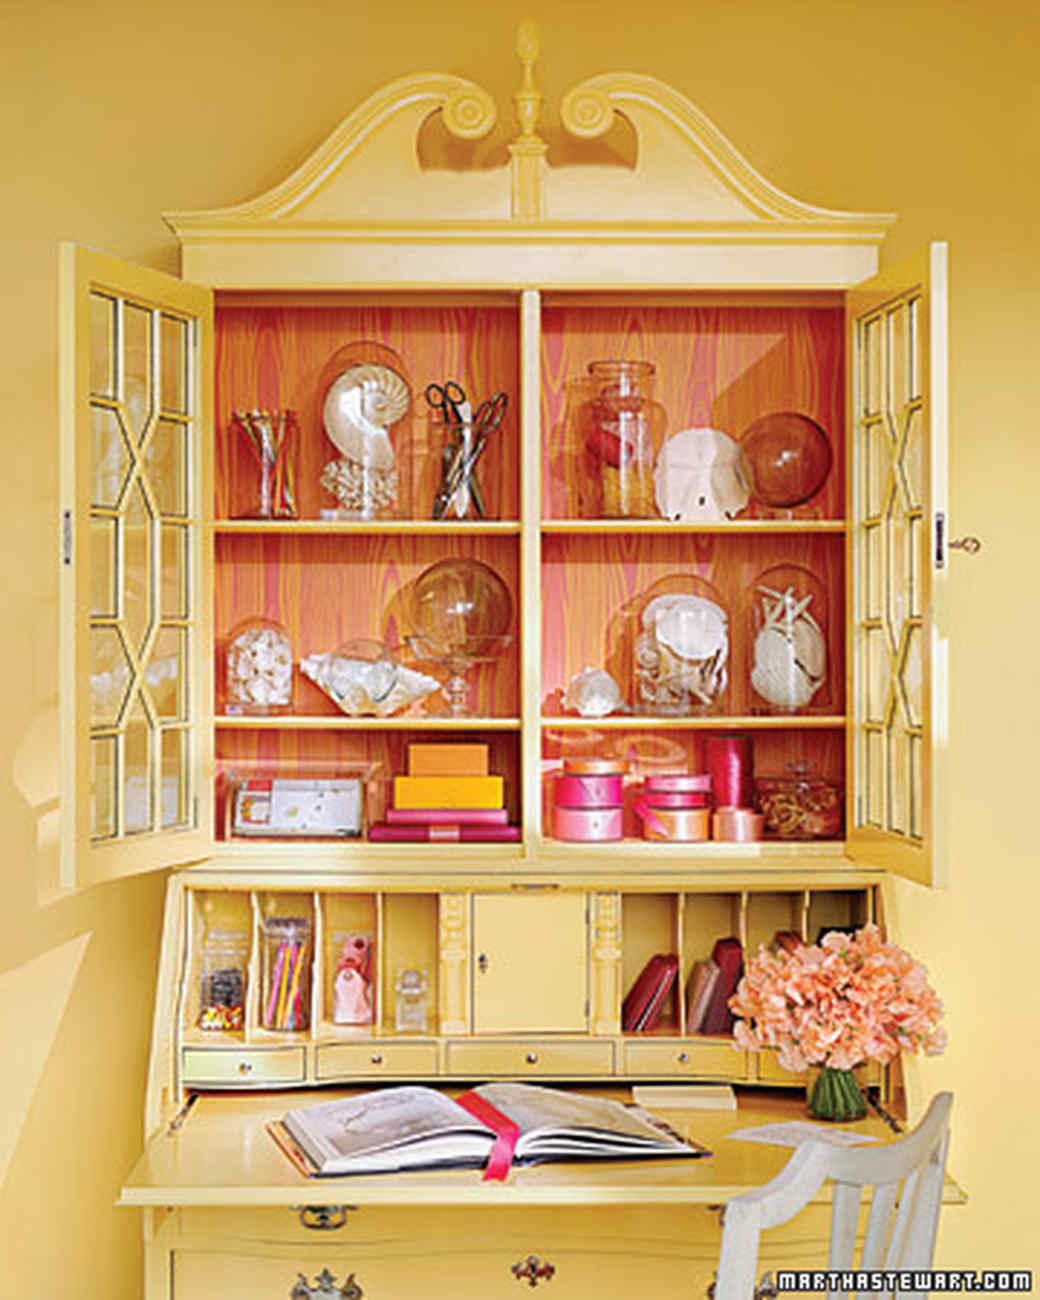 20 Ways To Decorate With Orange And Yellow: Decorating With Yellow And Orange